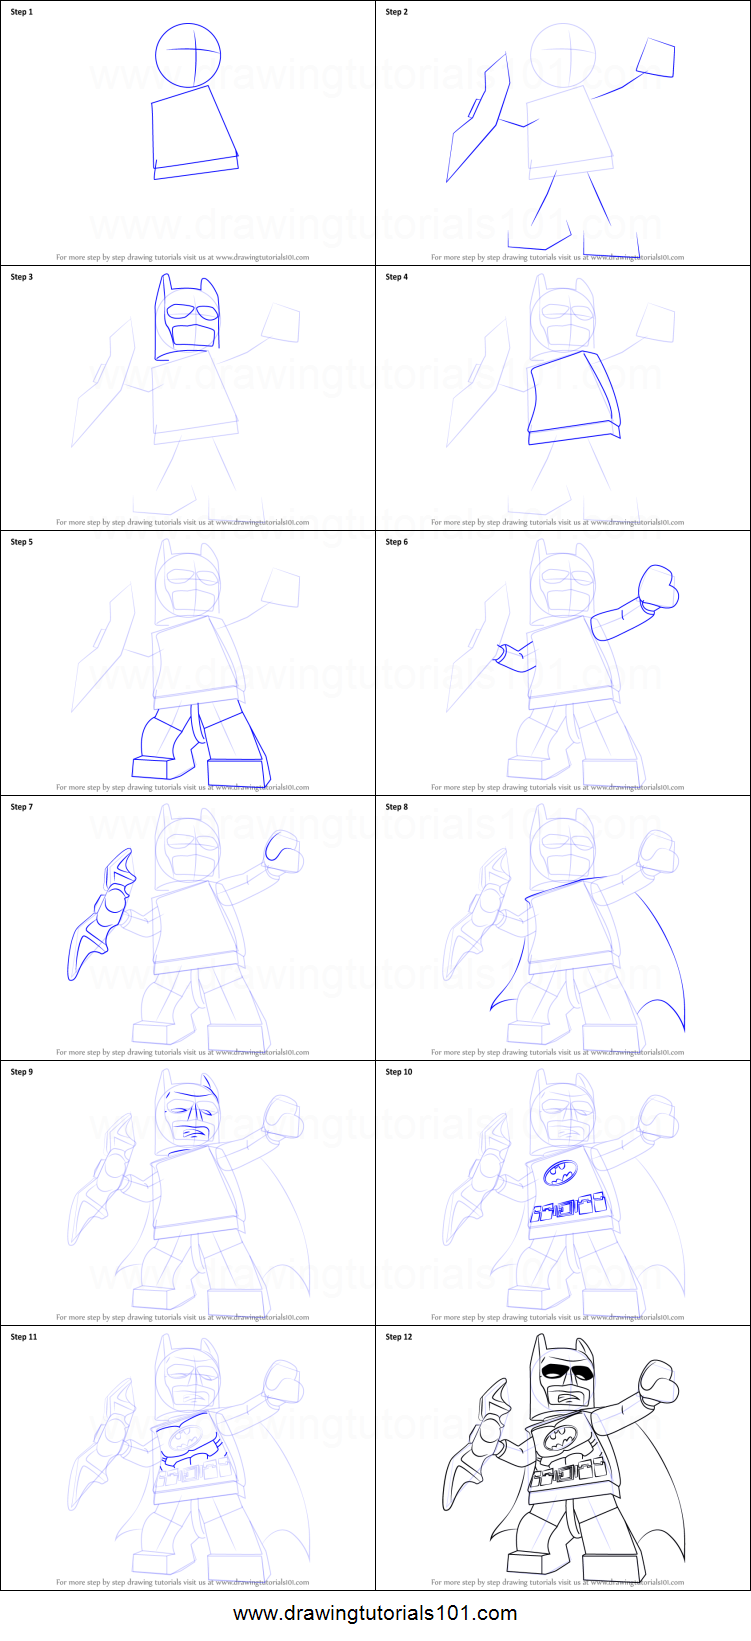 how to draw lego characters